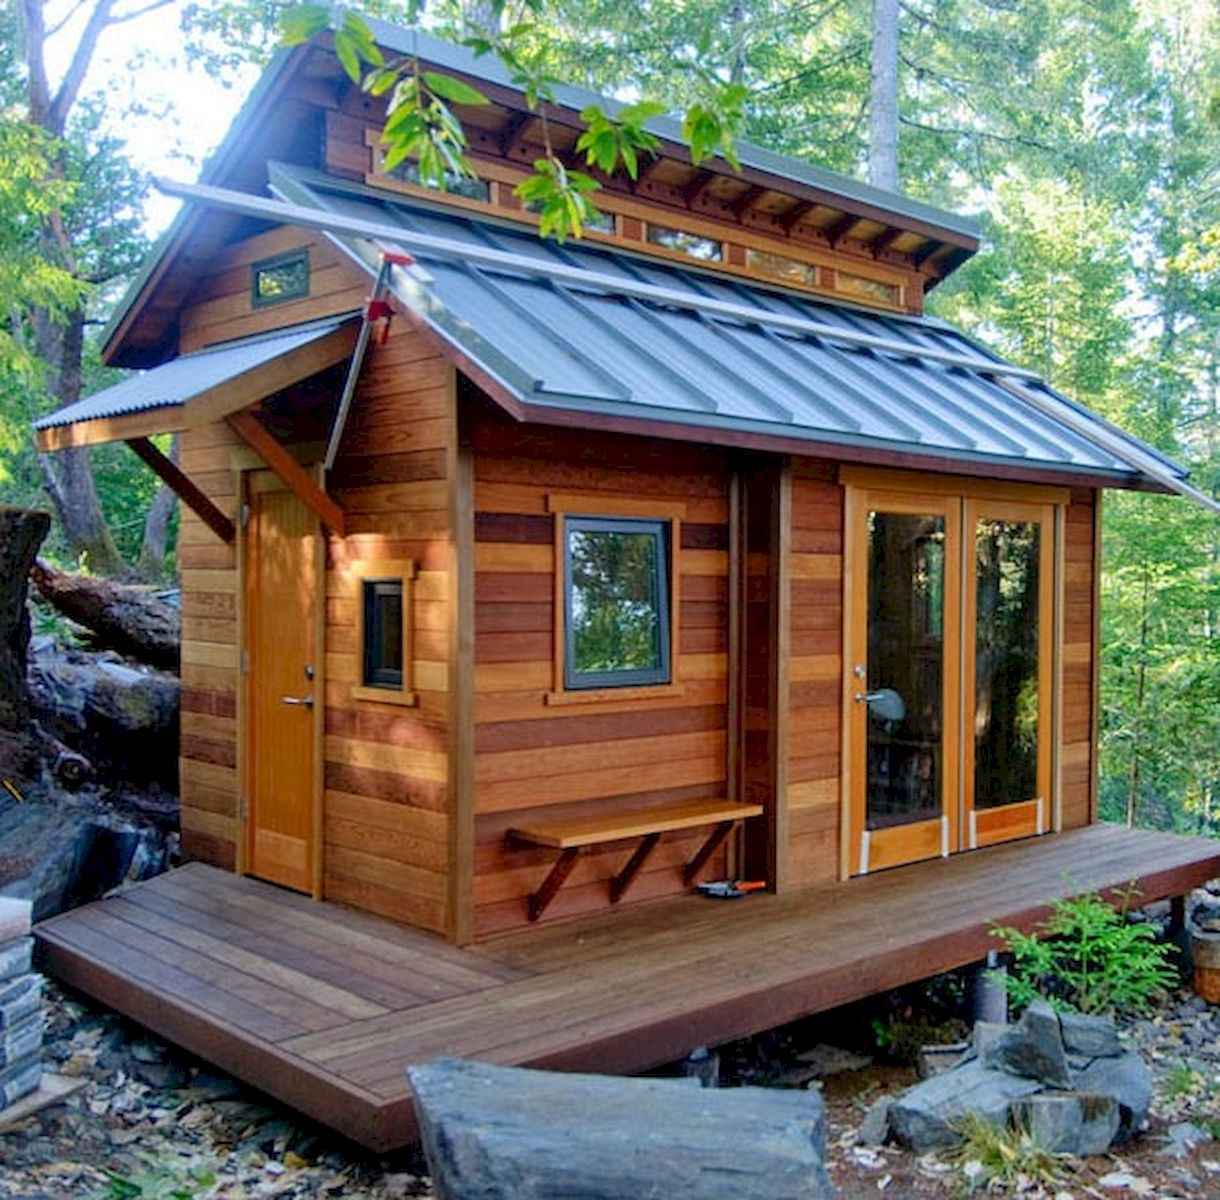 60 Rustic Log Cabin Homes Plans Design Ideas And Remodel (51)